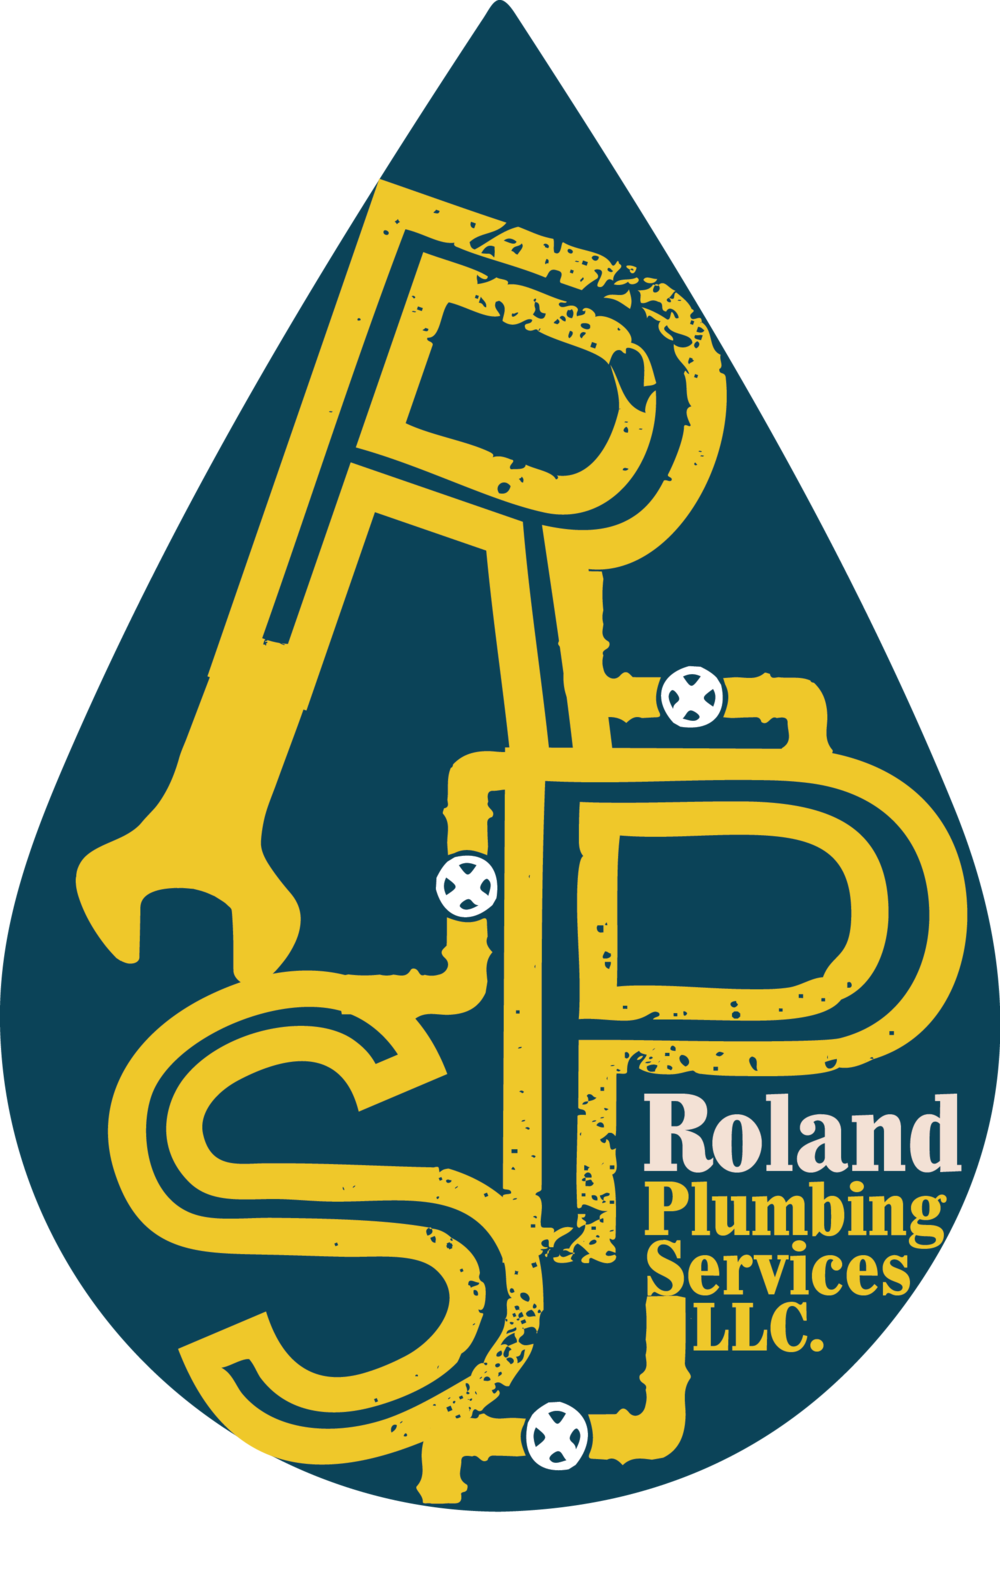 Roland Plumbing Serivces Logo.png